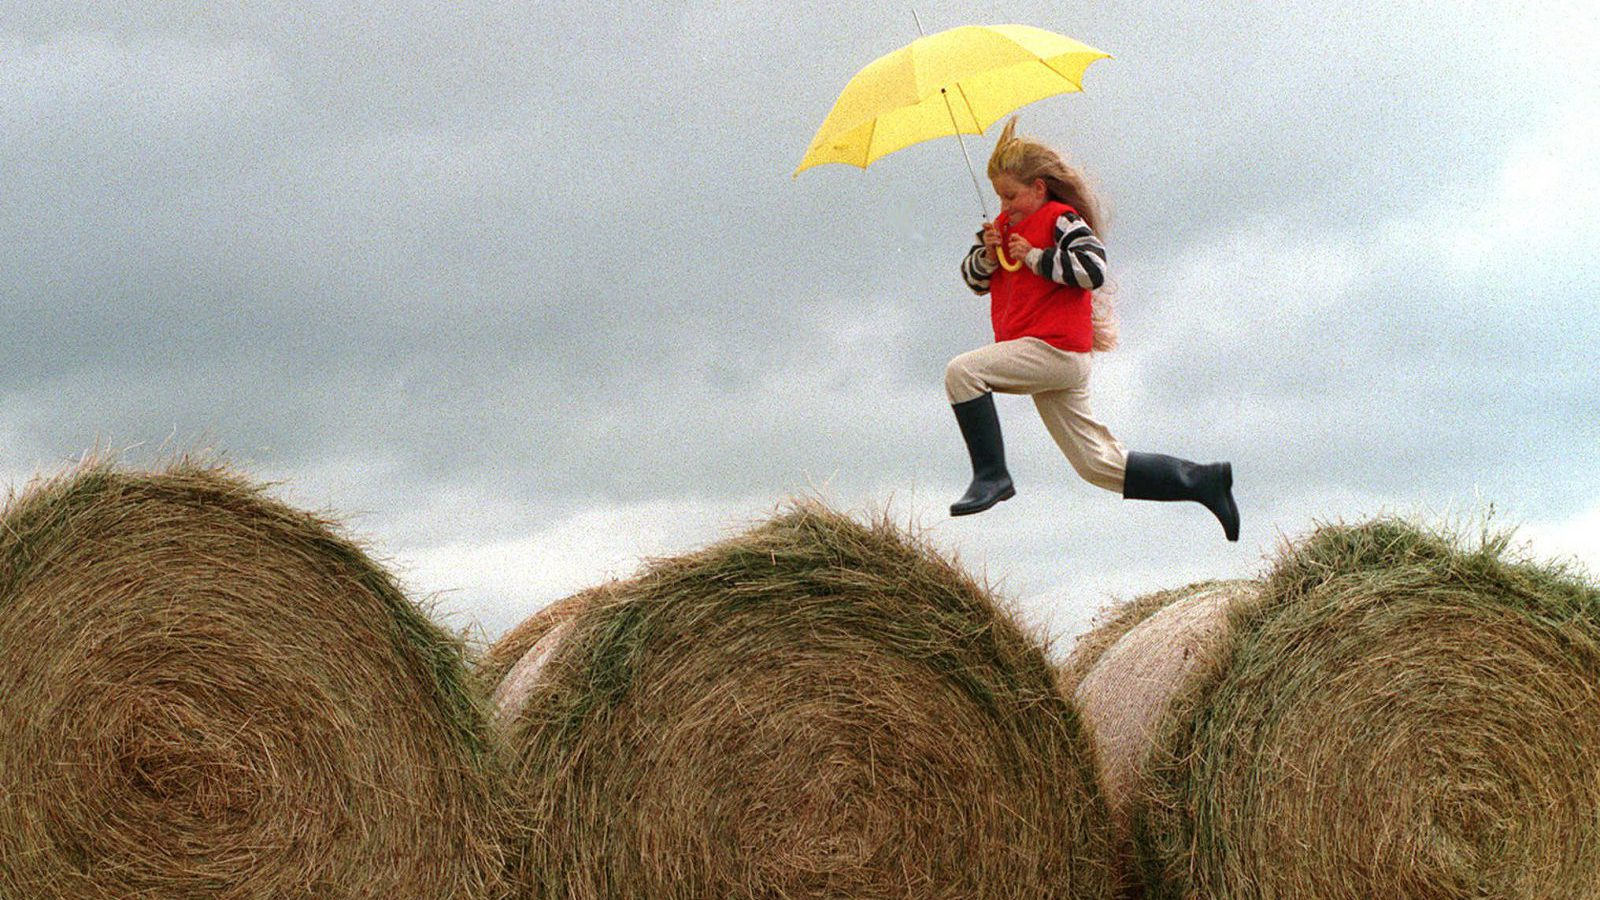 girl with umbrella skipping over hay bales